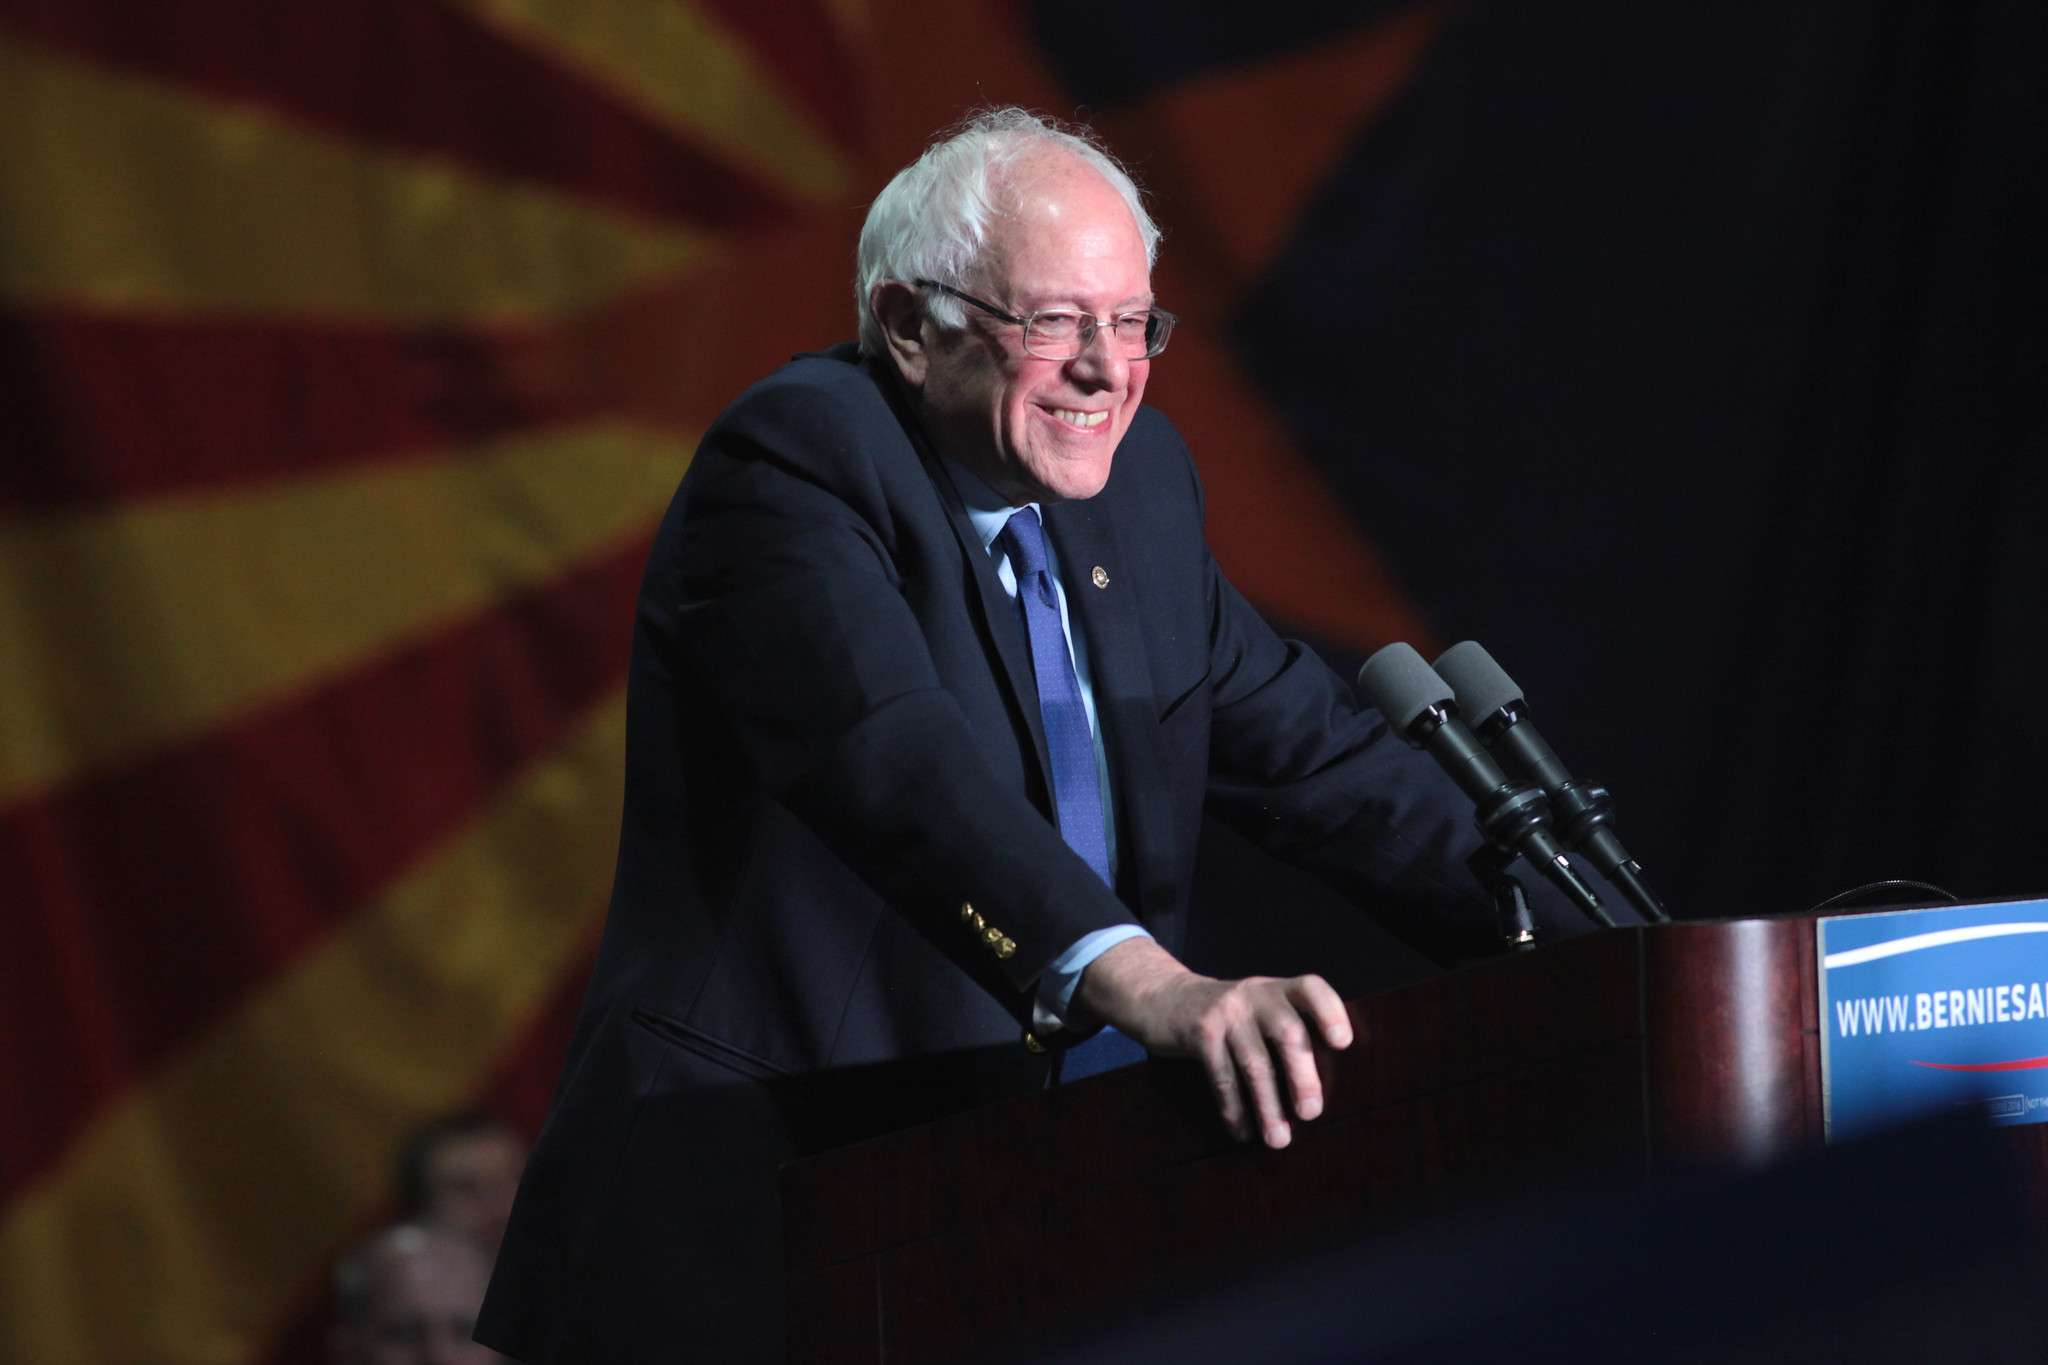 U.S. Senator Bernie Sanders speaking with supporters at a campaign rally at the Phoenix Convention Center in Phoenix, Arizona on March 15, 2016. (Image Credit: Gage Skimore/Flickr)